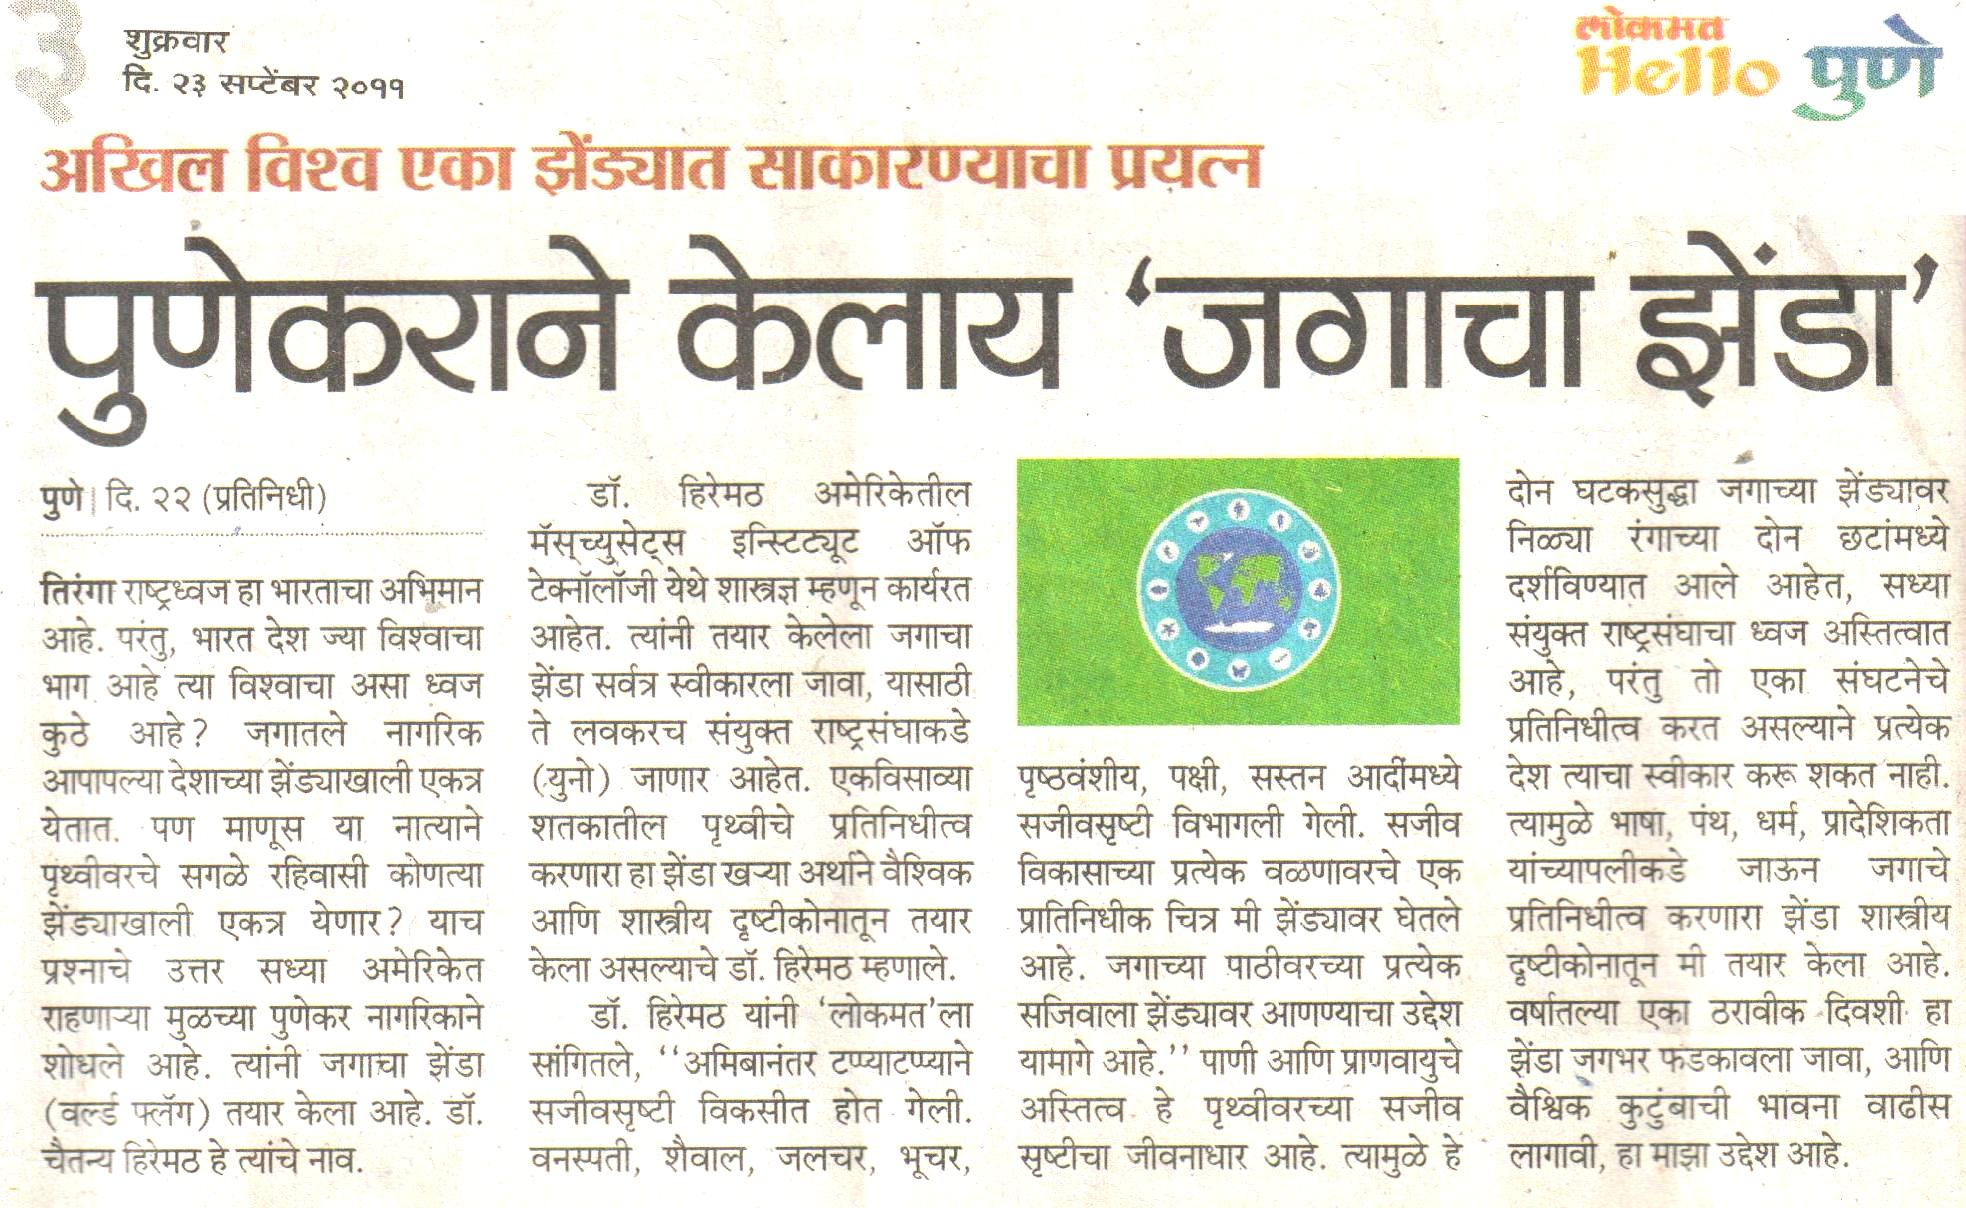 NewsPaper_Lokmat_23Sep2011